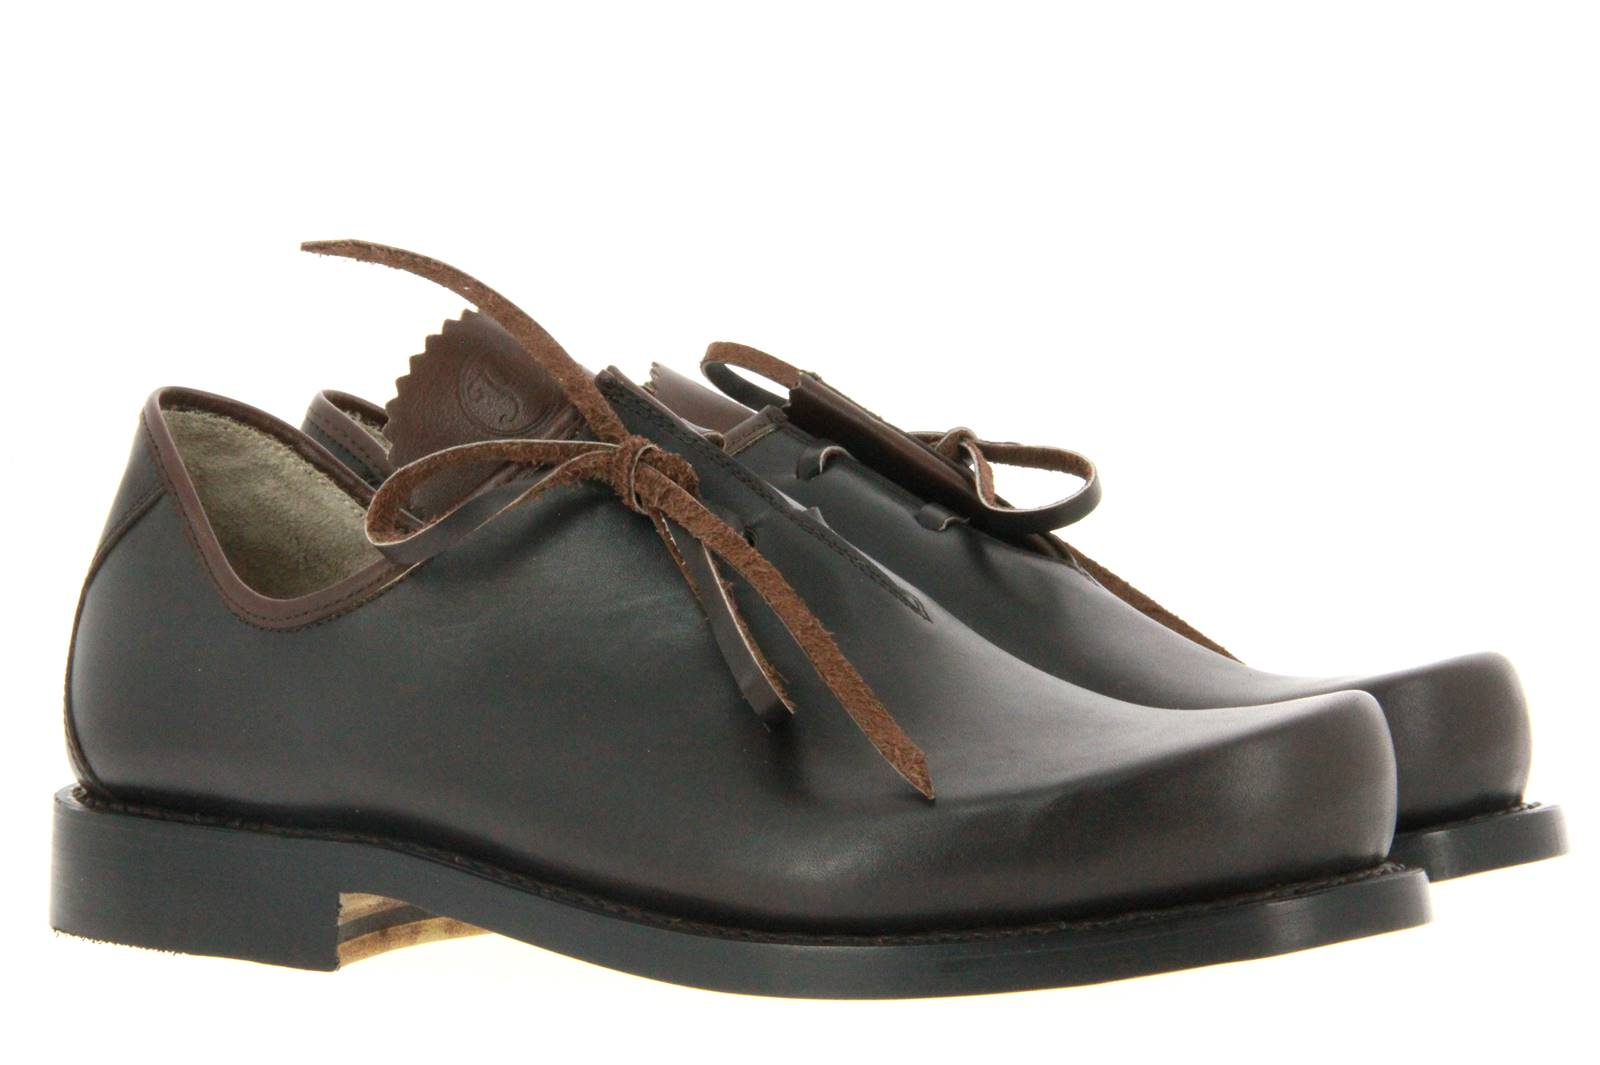 Original Haferl traditional lace-up FRANZ KALBSLEDER BRAUN